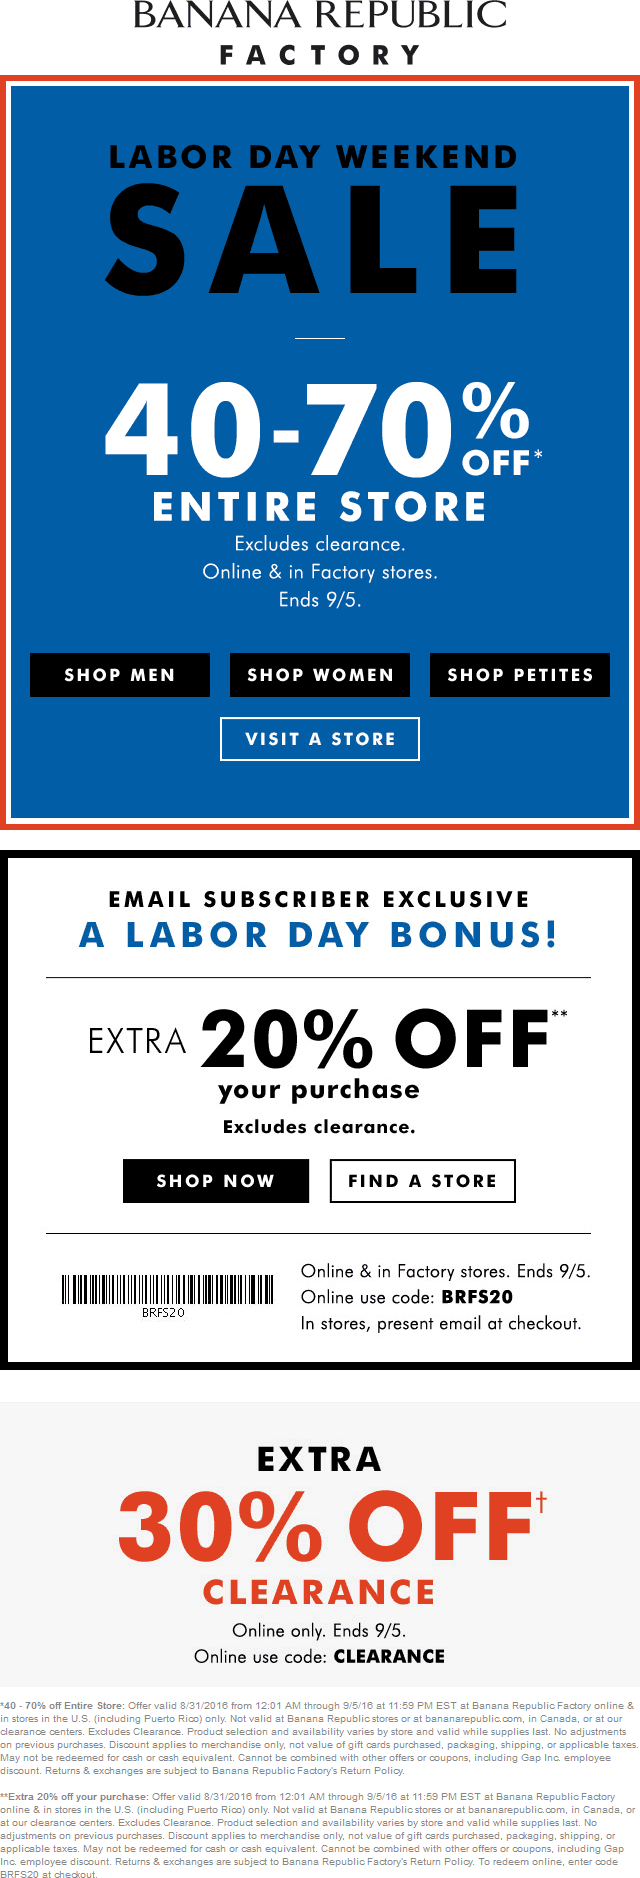 Banana Republic Coupon October 2016 Extra 40-70% off everything at Banana Republic Factory, ditto online